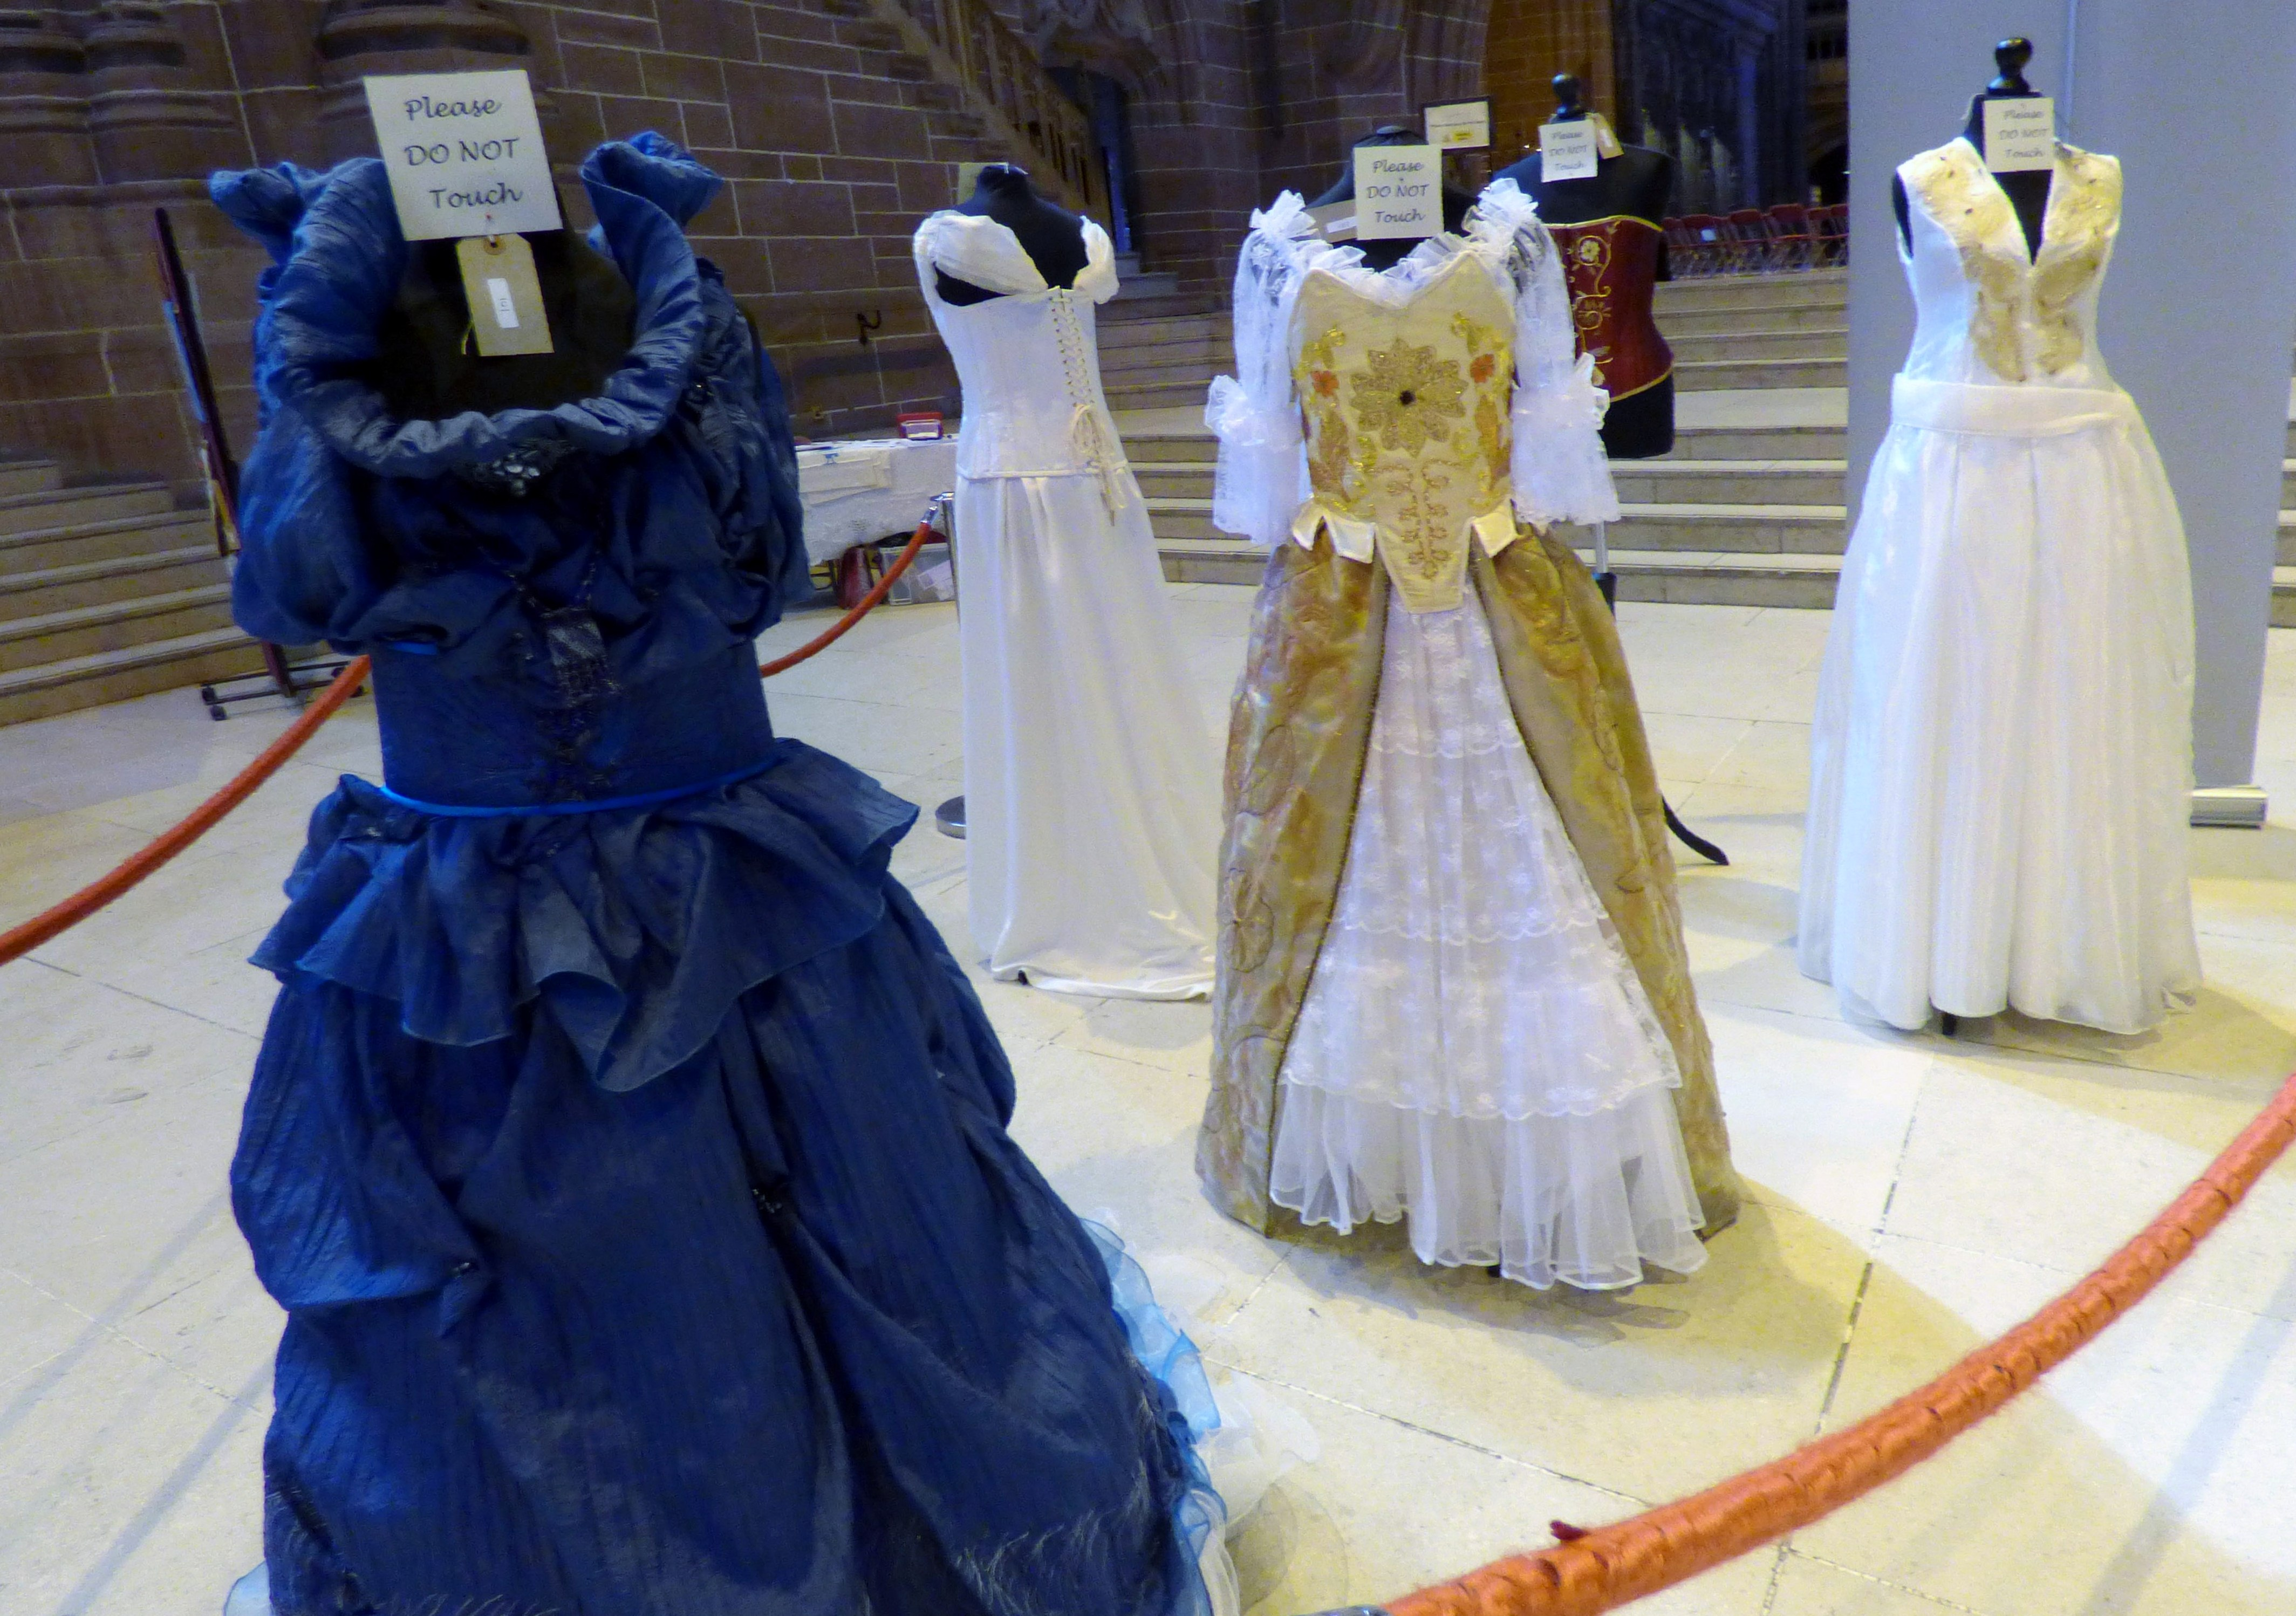 hand embroidererd dresses and corsetry by Gill Roberts at 60 Glorious Years exhibition, Liverpool Anglican Cathedral 2016